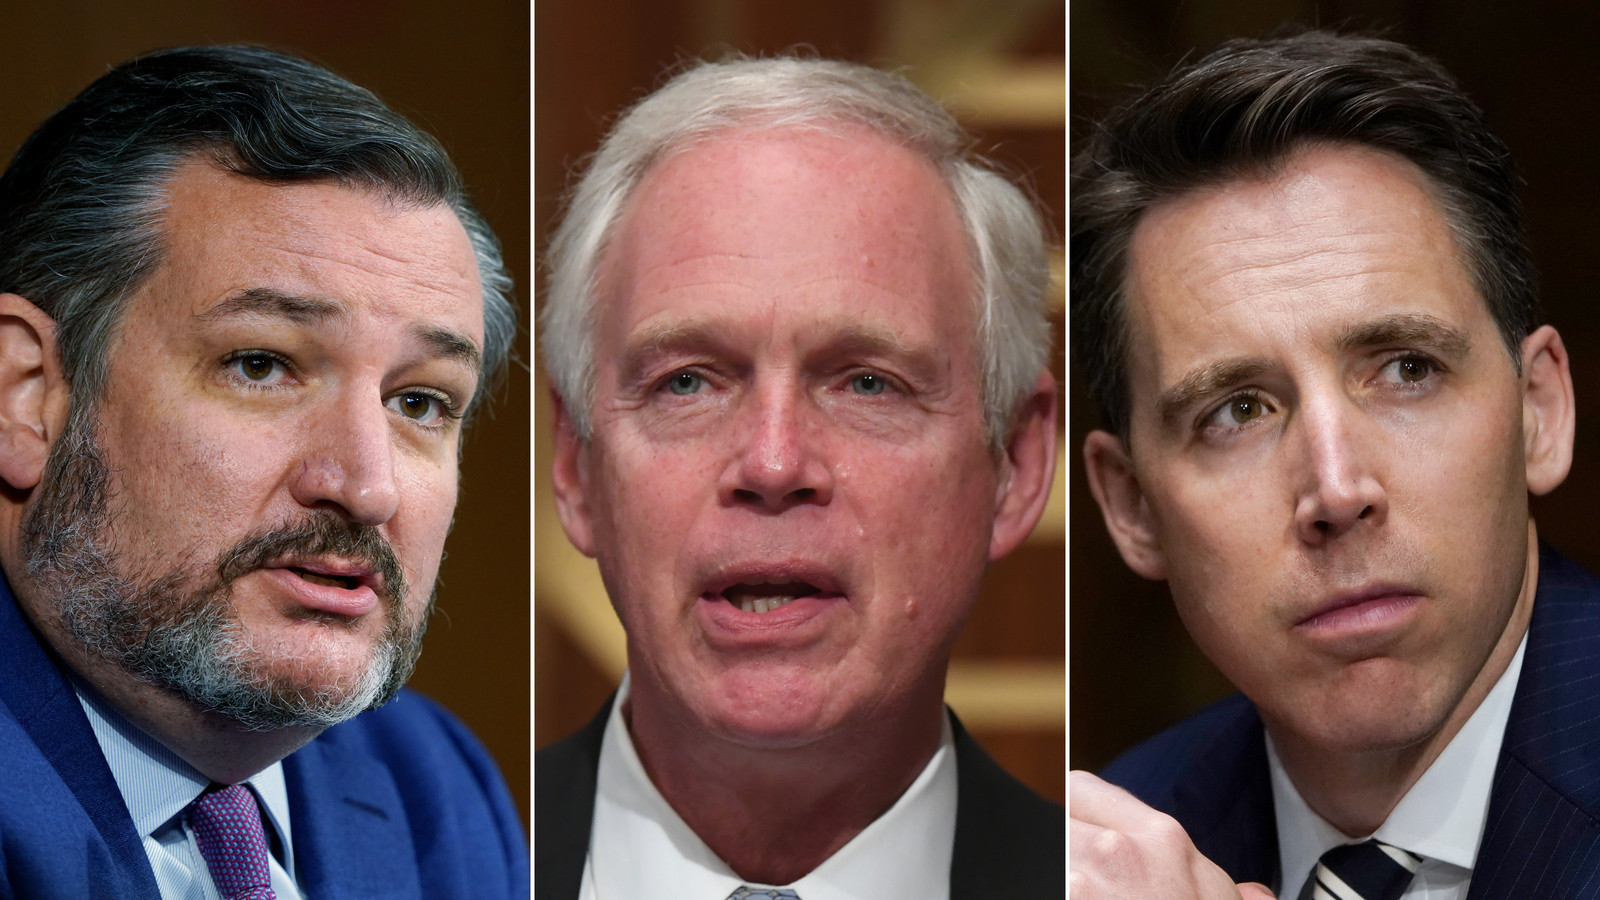 Pictured 3 Republican senators should be kicked off committees and possibly expelled for supporting Trump and inciting Capitol Hill mob violence - Democrat Senator suggests